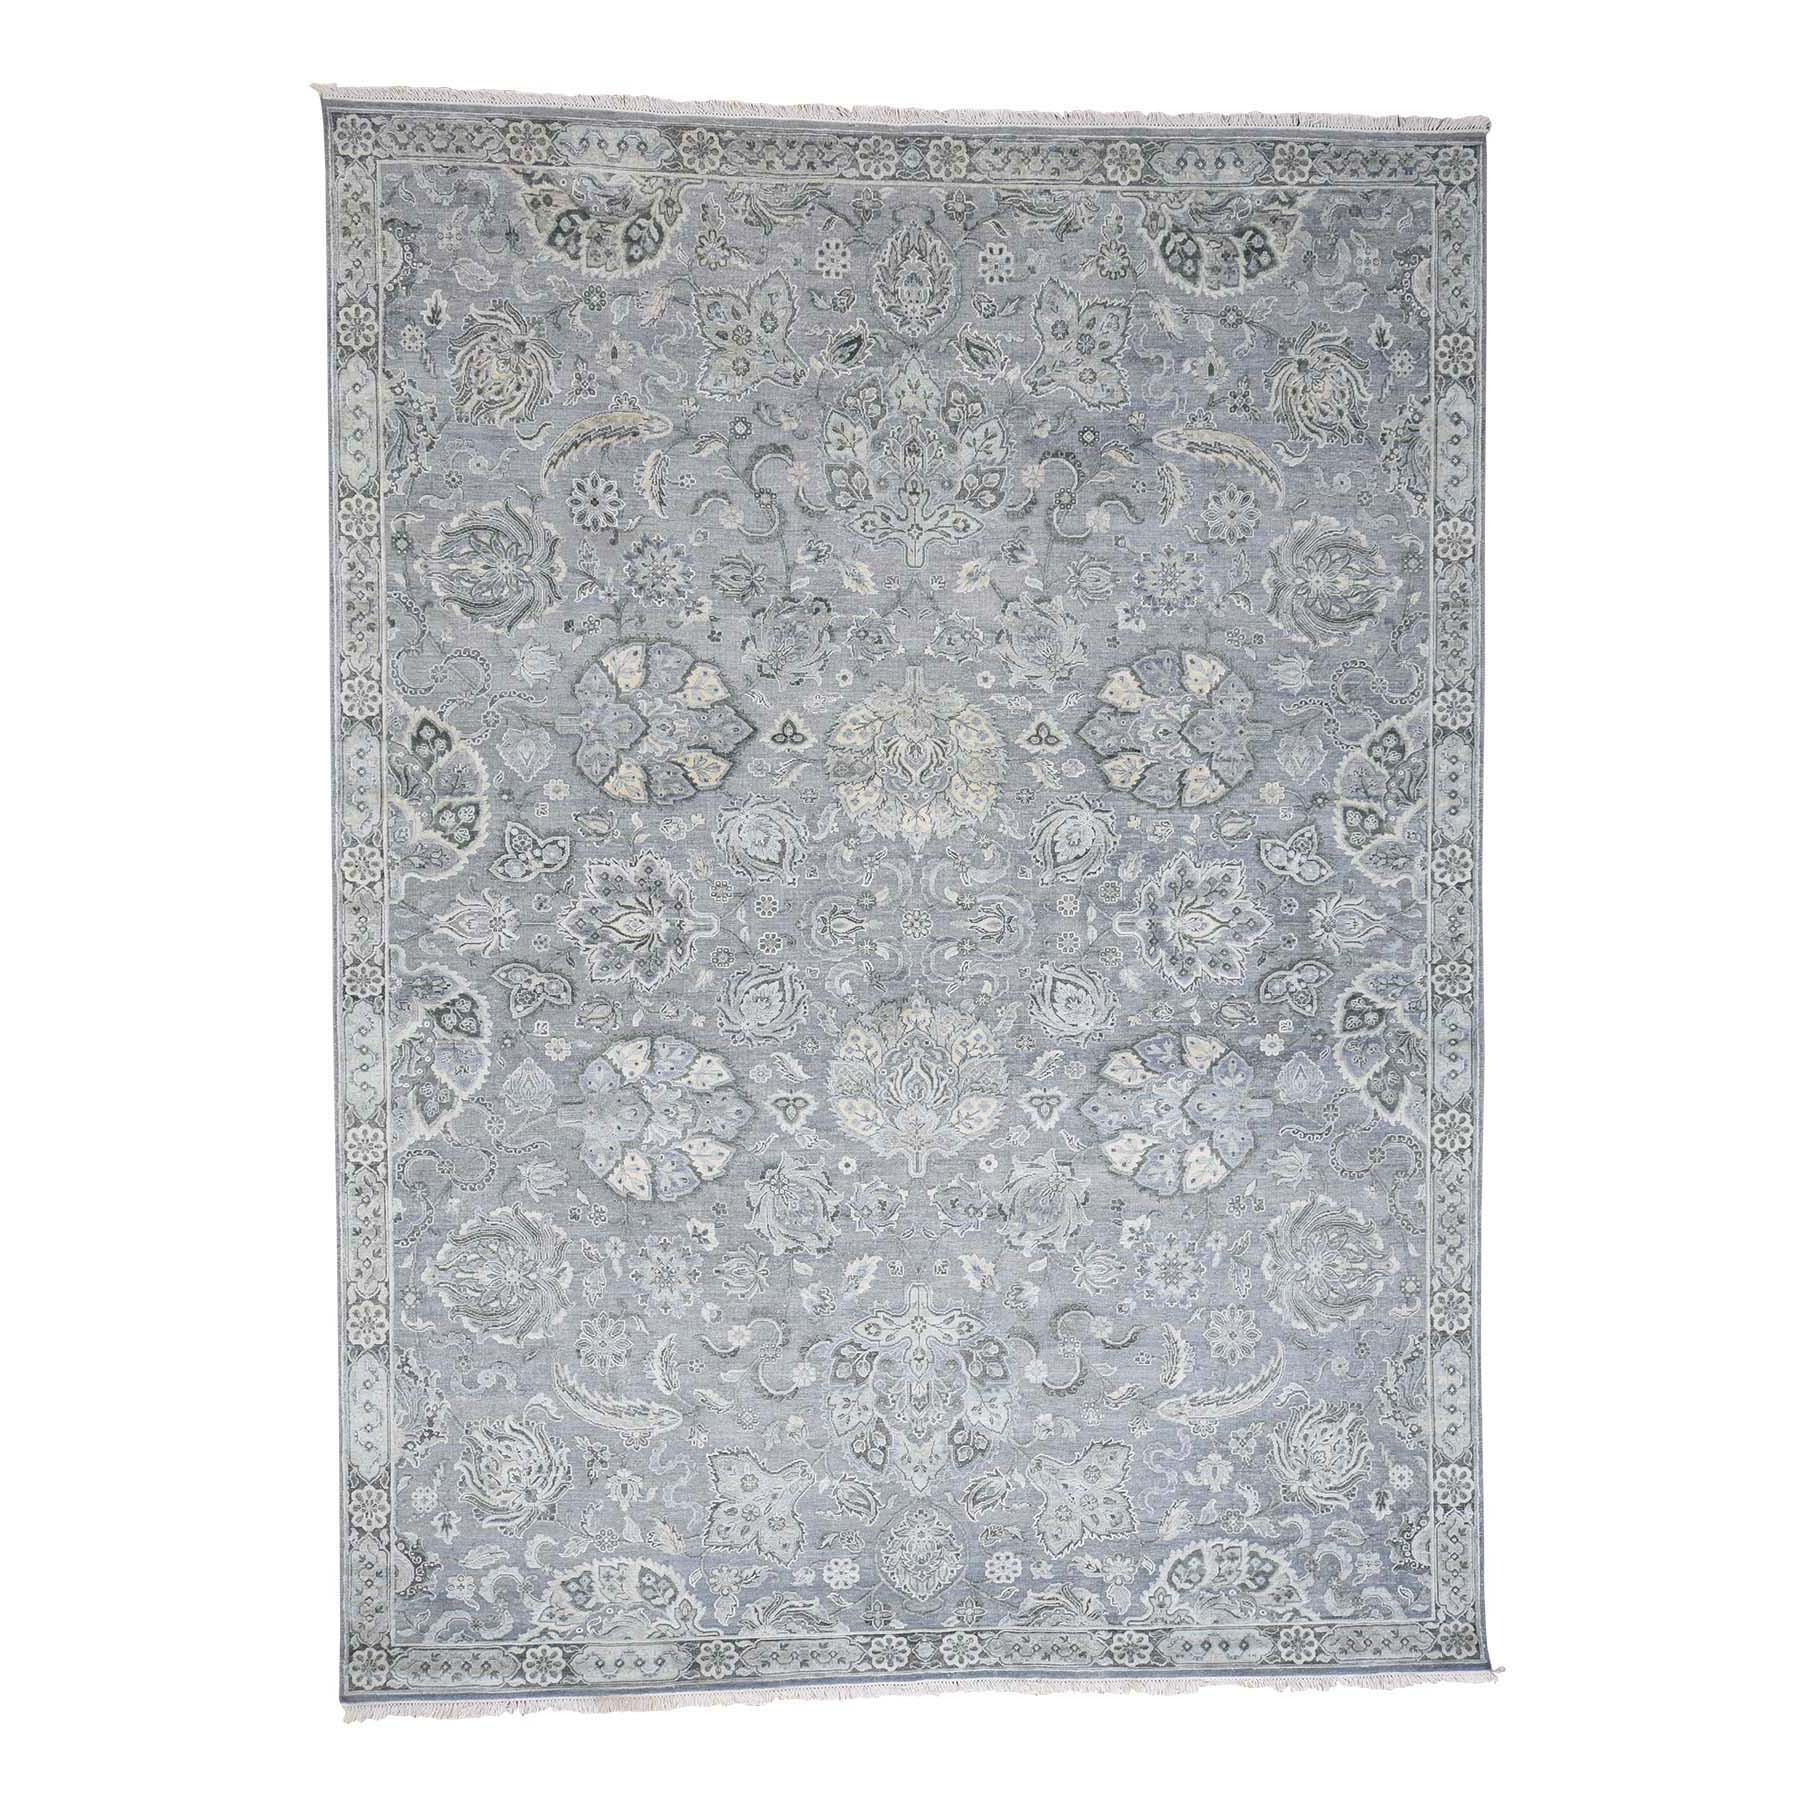 9'X12' Tone On Tone Oushak Silk With Oxidized Wool Hand-Knotted Oriental Rug moad0edb